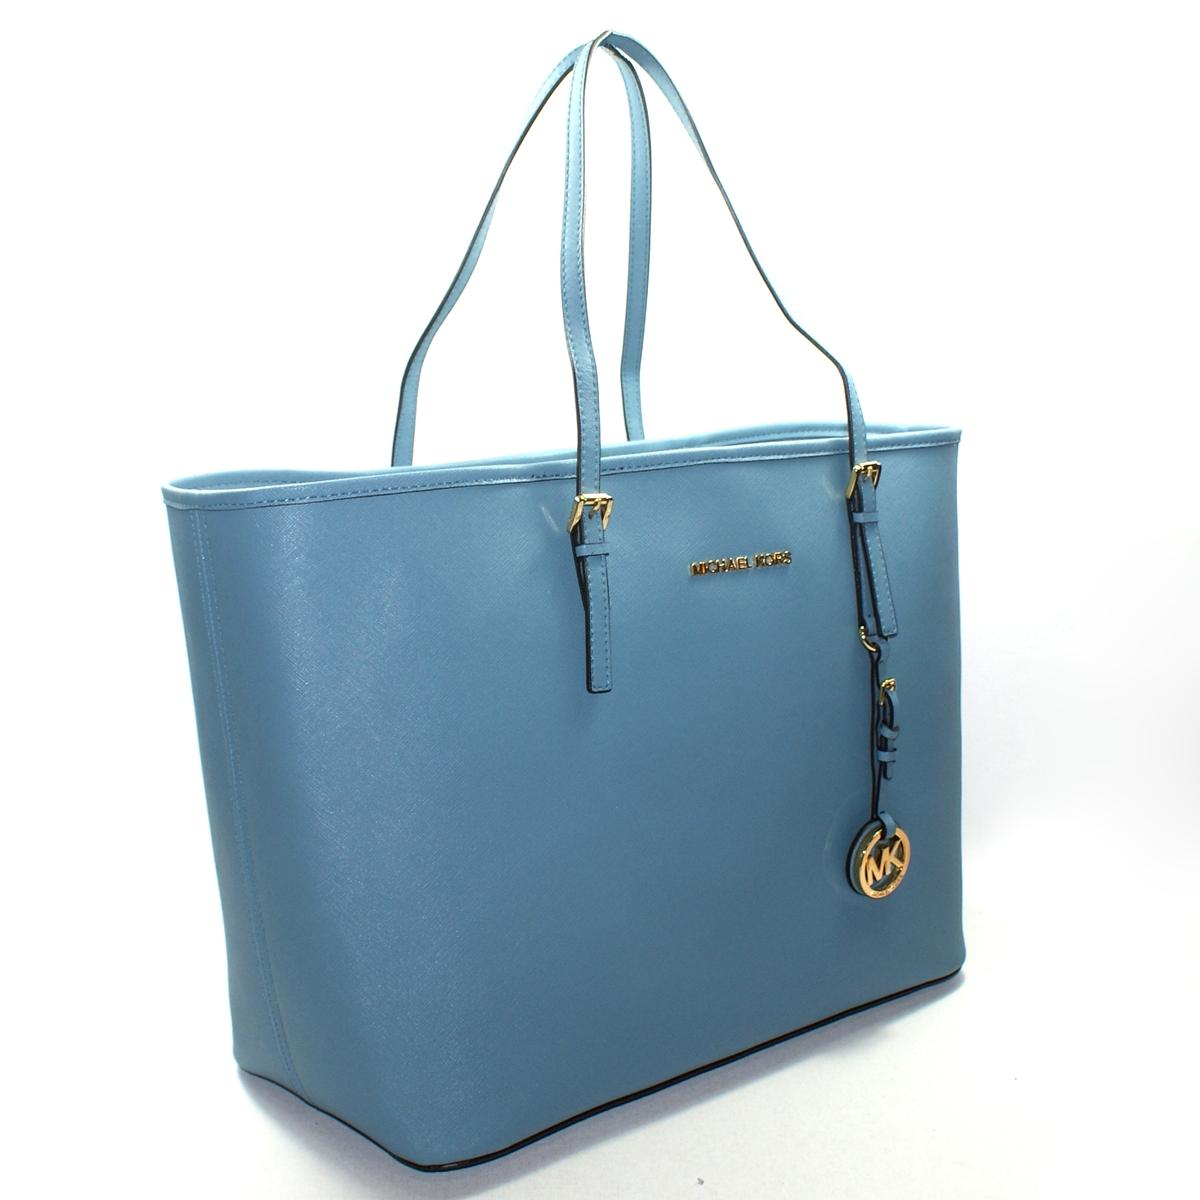 michael kors blue leather medium travel tote bag 30h1gtvt2l michael. Black Bedroom Furniture Sets. Home Design Ideas